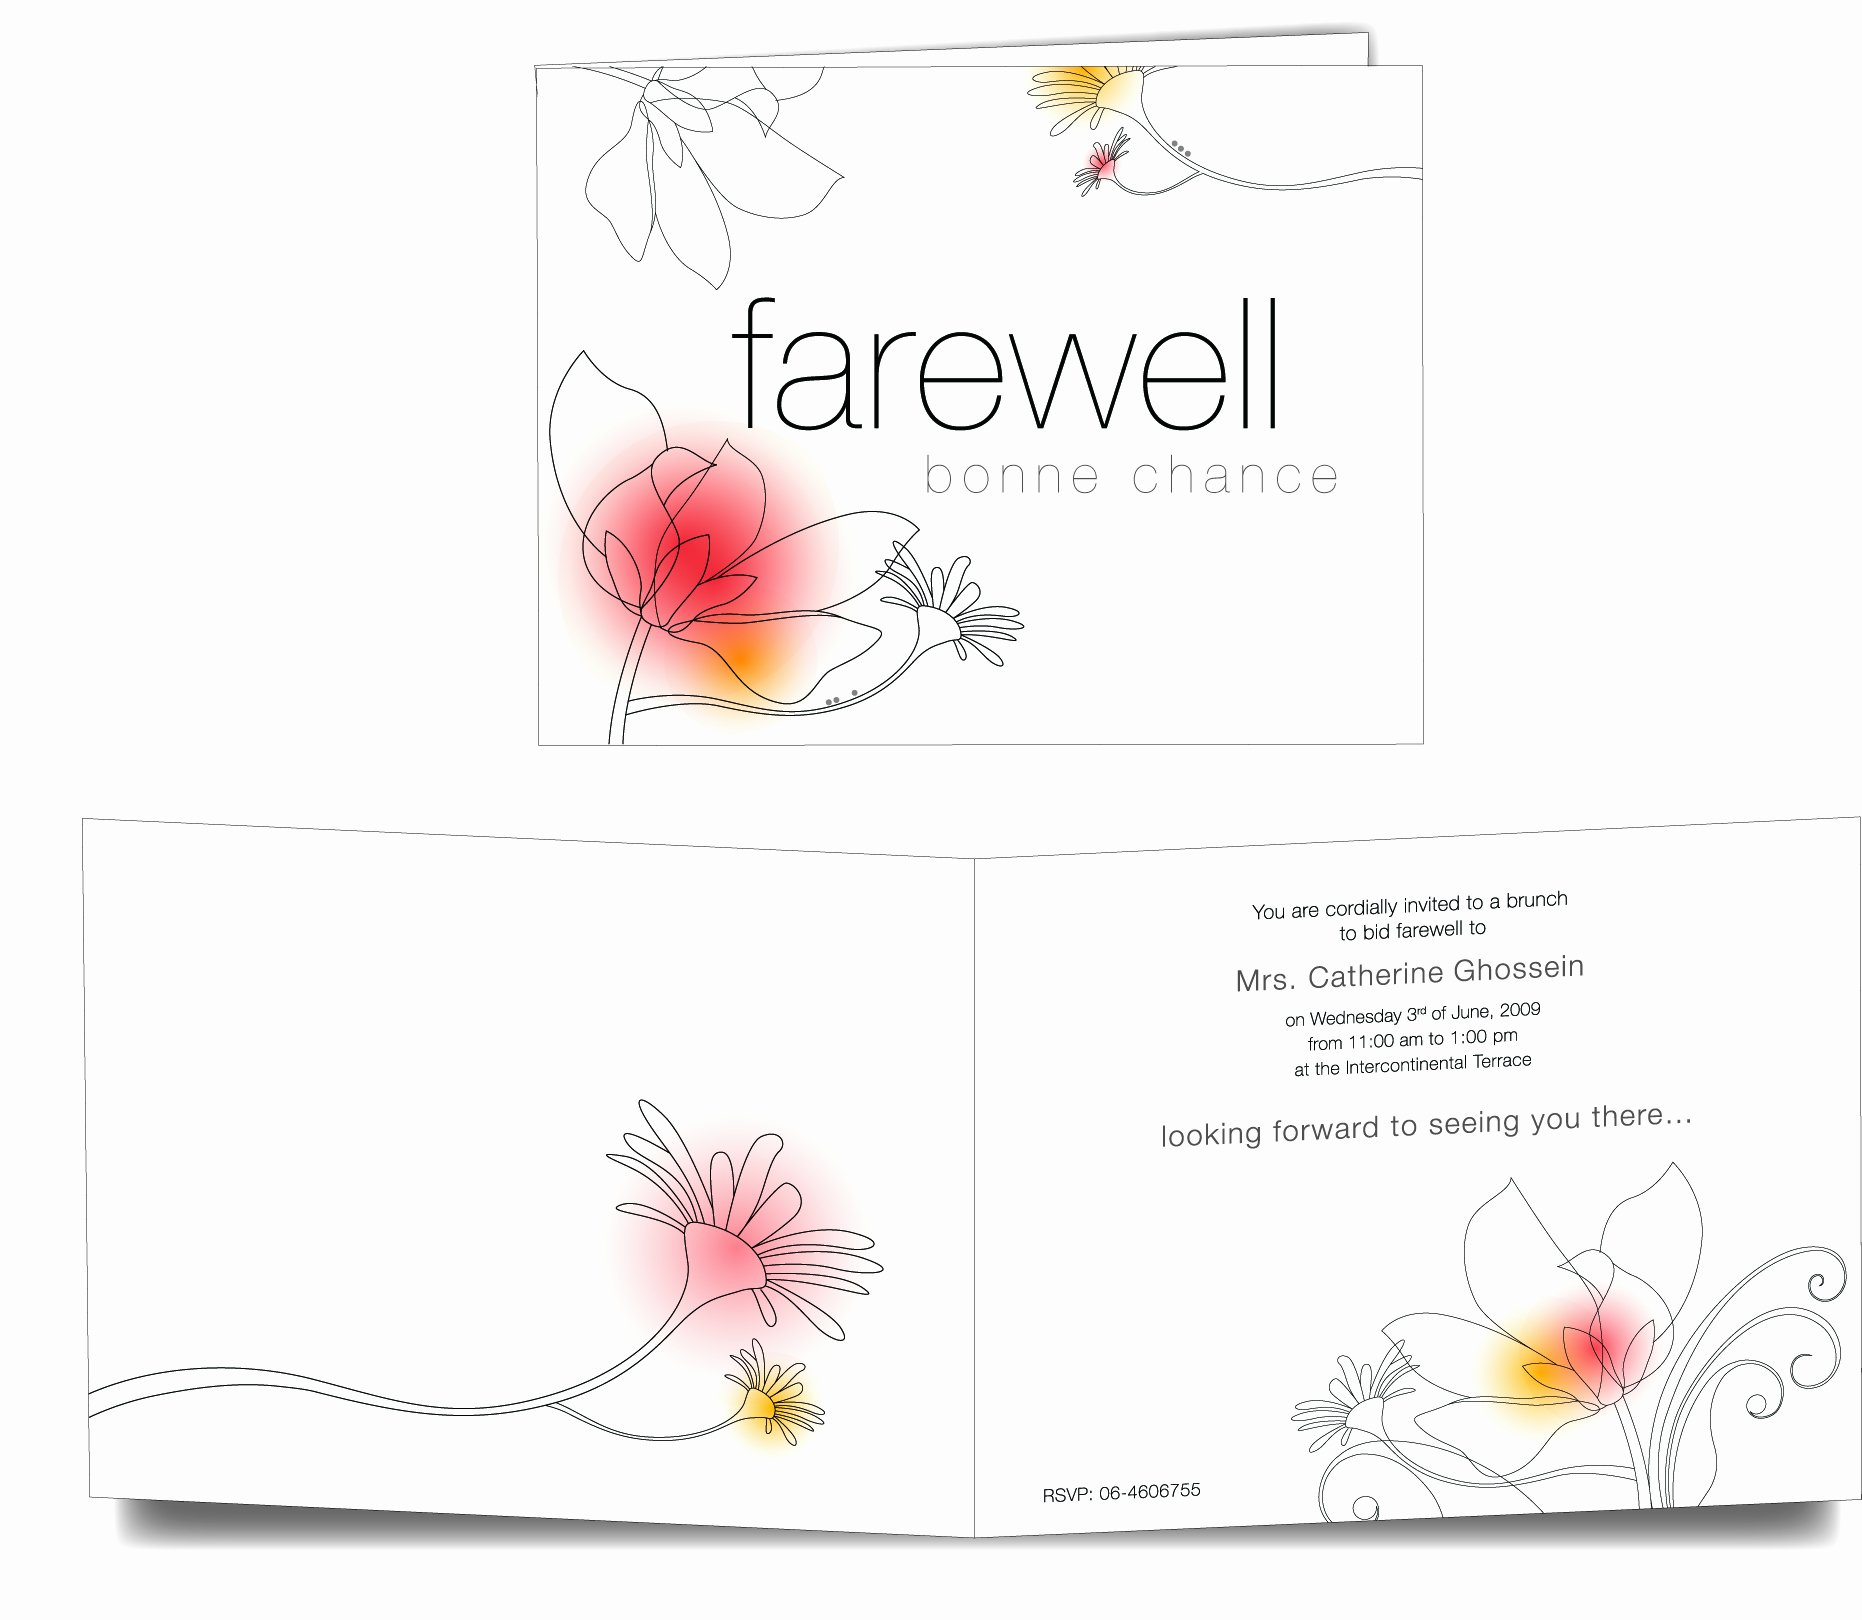 Free Farewell Invitation Template Unique Farewell Card Template 23 Free Printable Word Pdf Psd